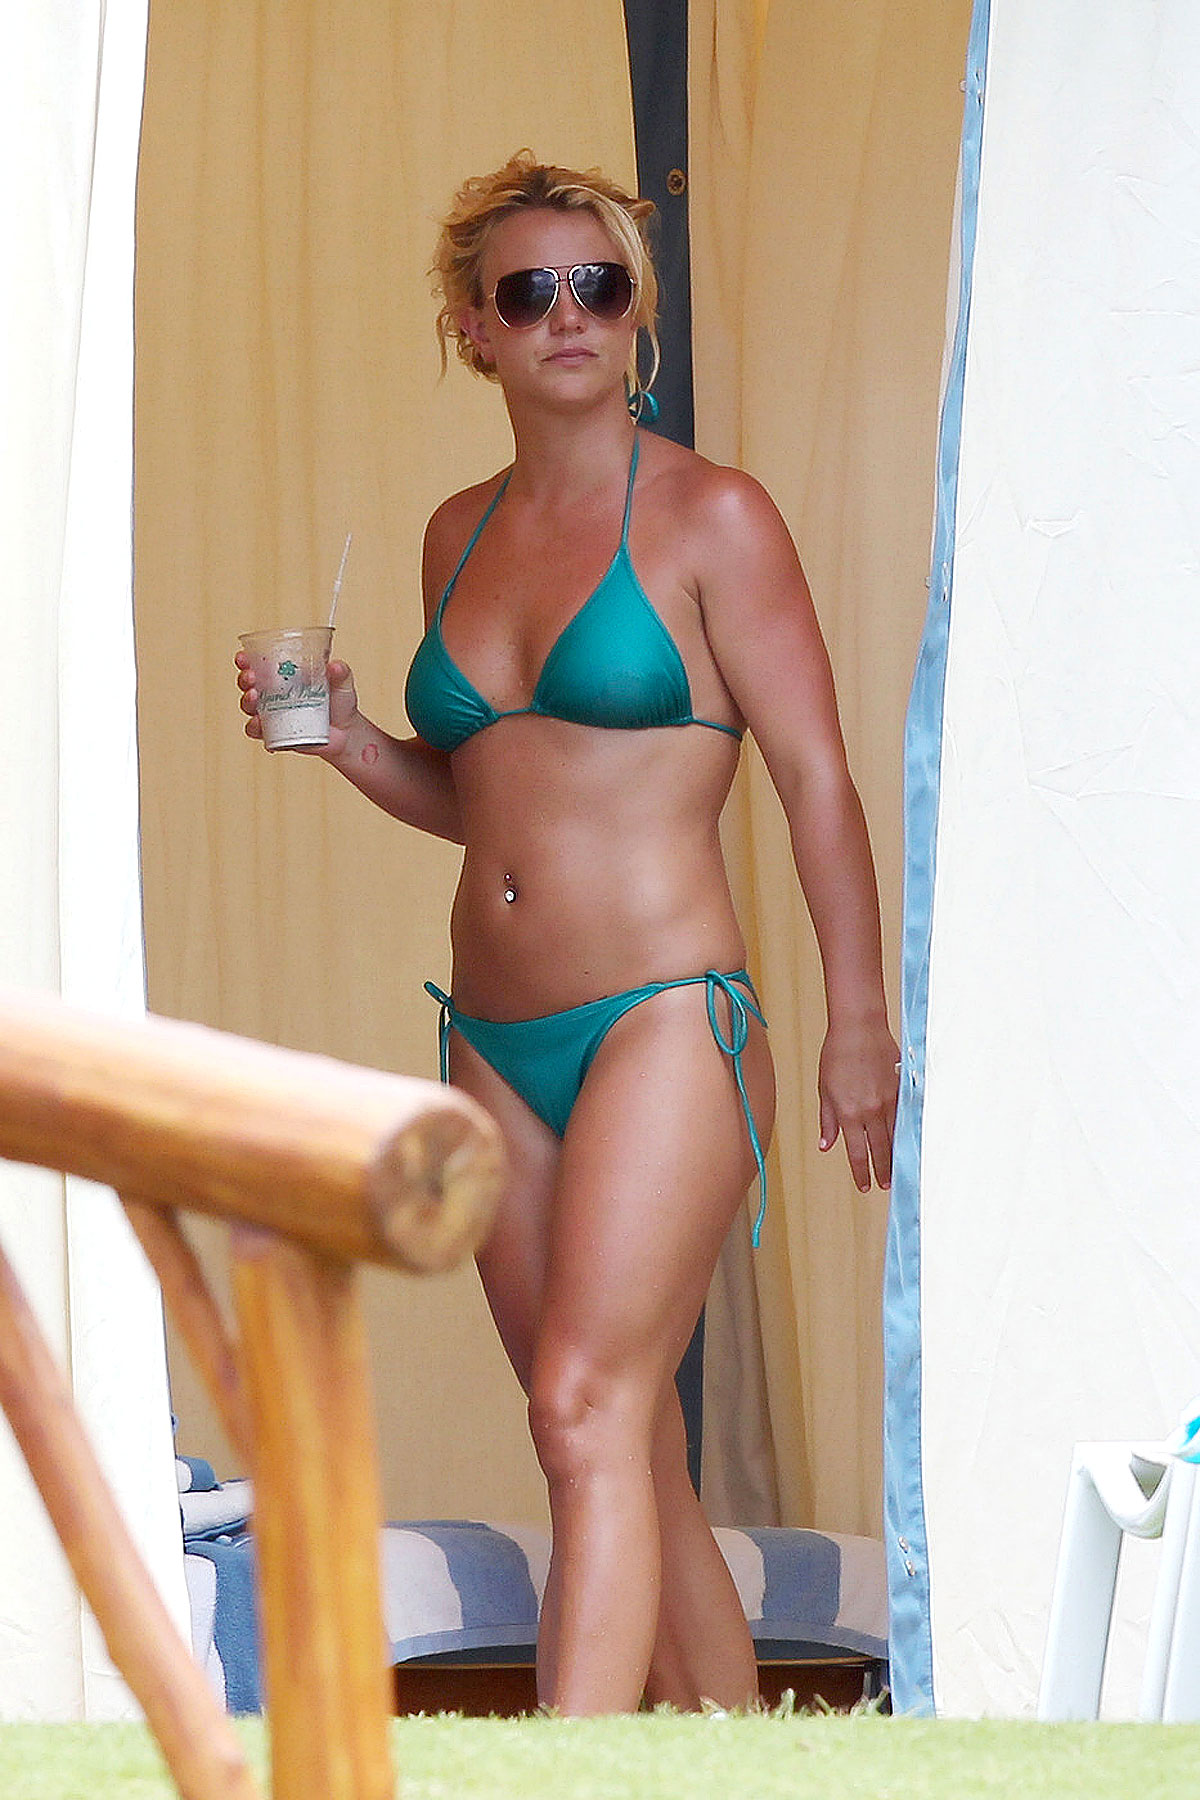 Britney Spears' Bikinis in Turquoise (PHOTOS)